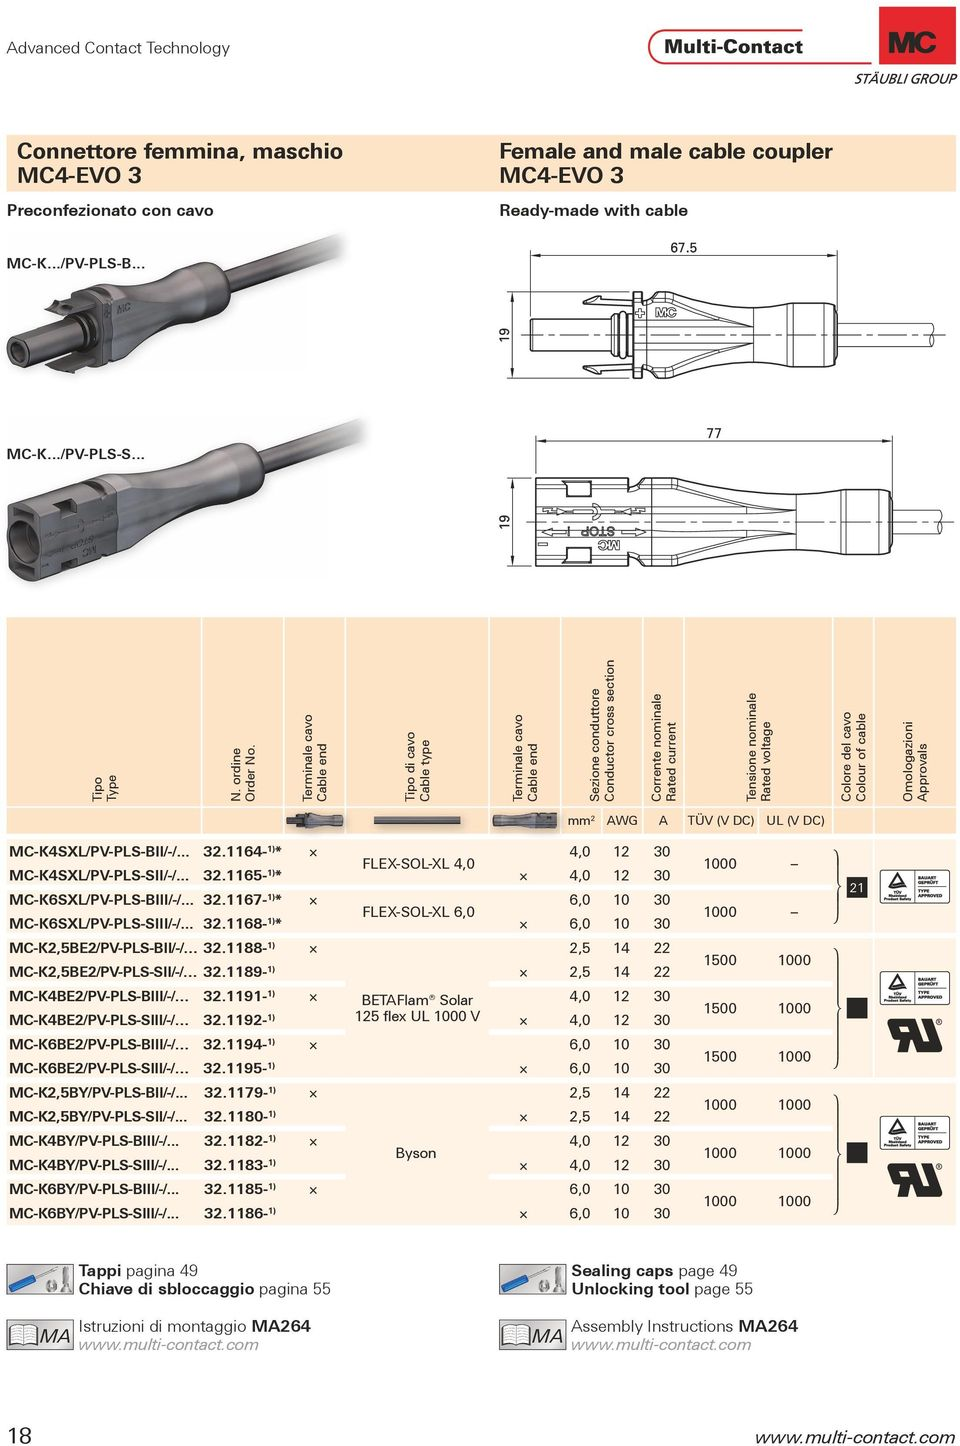 Connettore femmina Female cable coupler Connettore maschio Male cable coupler Connessione cavo Cable connection Sezione conduttore Conductor cross section Ø di (mm) mm² PV-ADBP3/GWD 32.